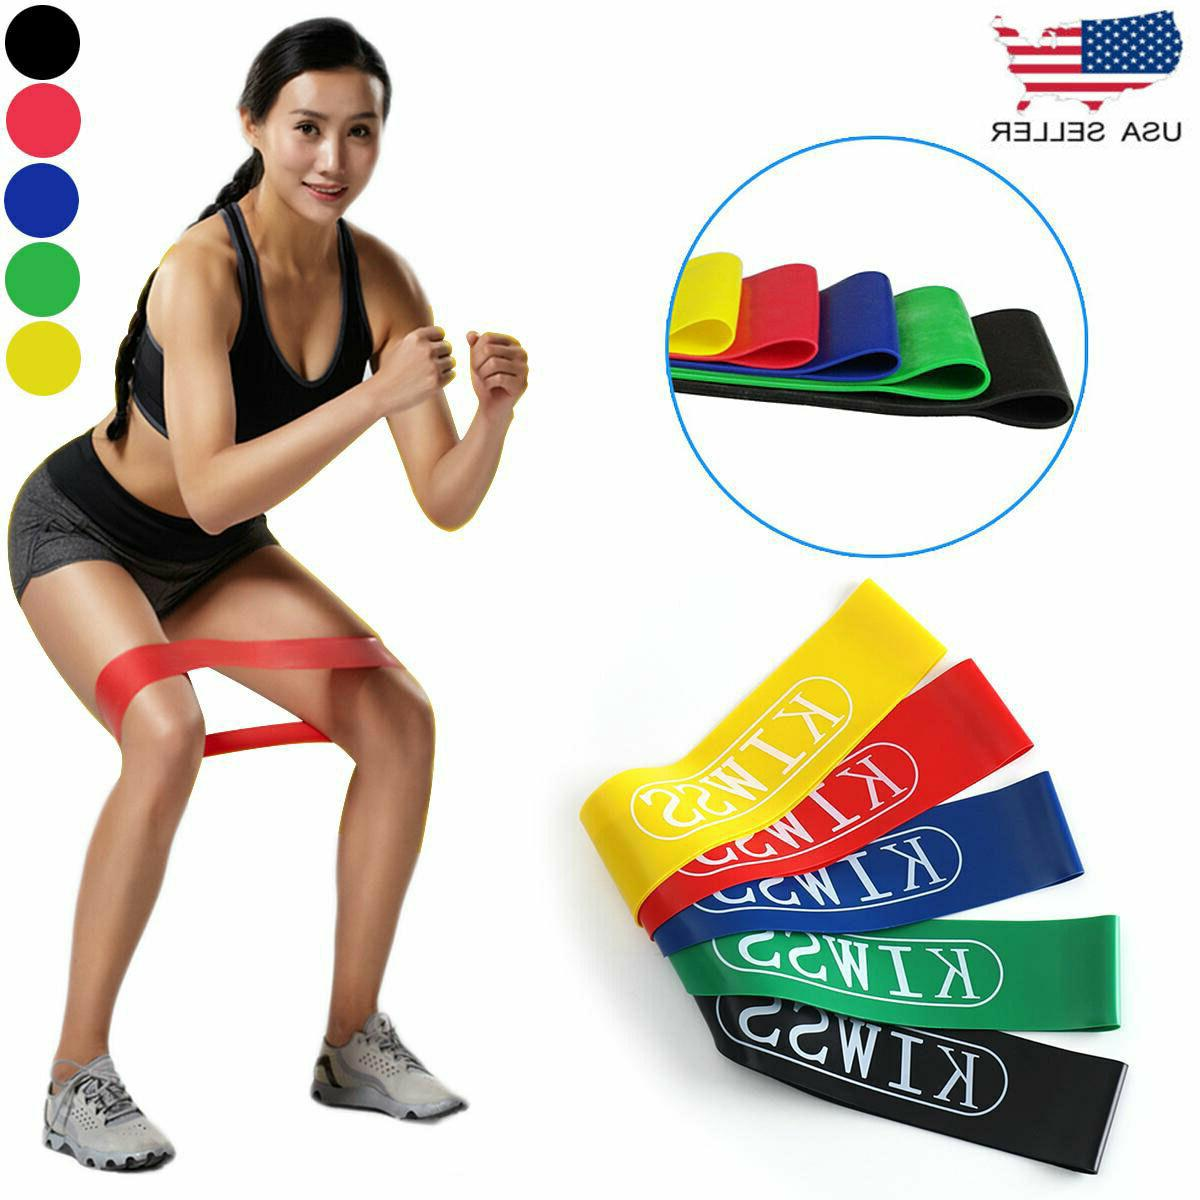 16pcs heavy duty resistance band loop exercise